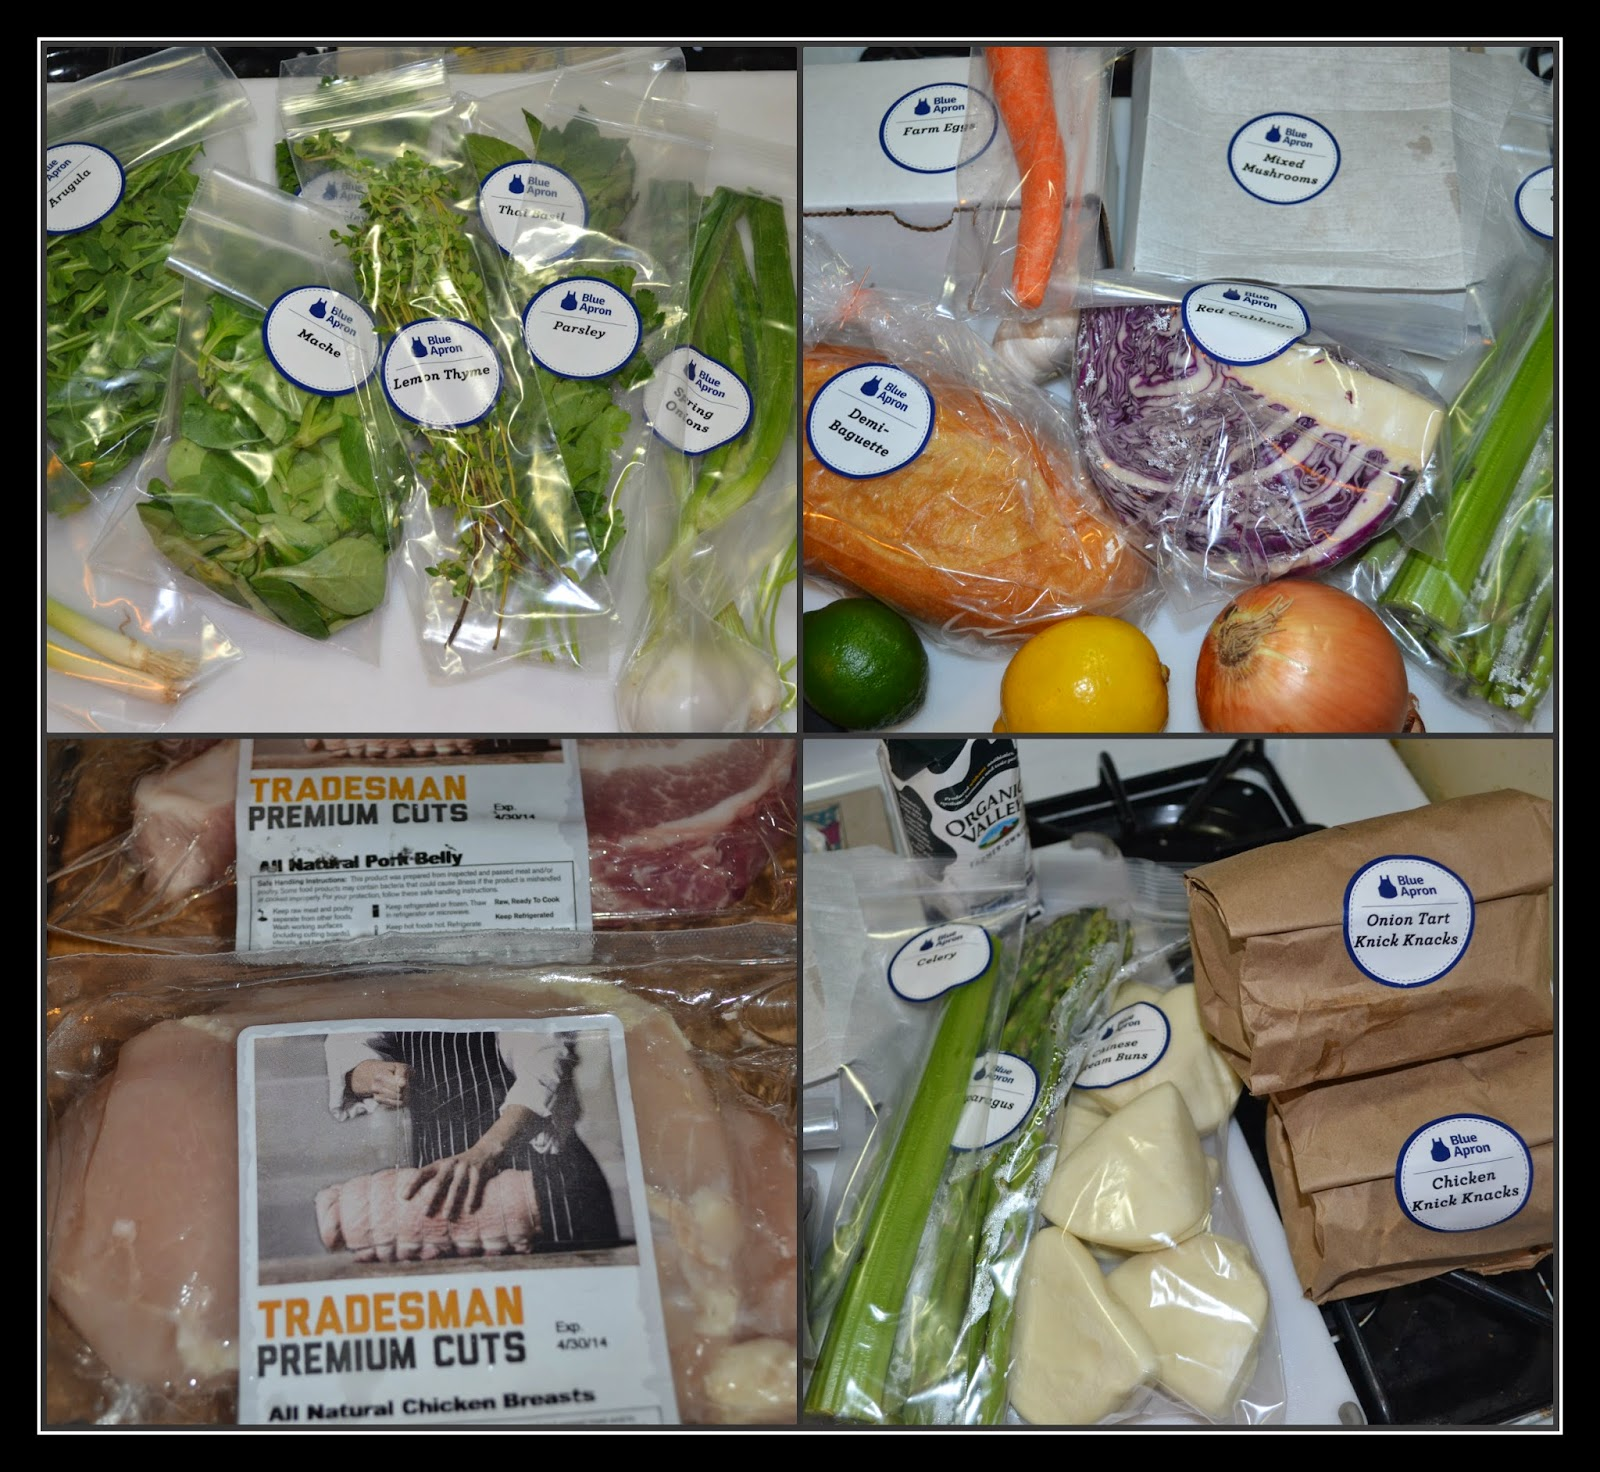 Blue apron weekly cost